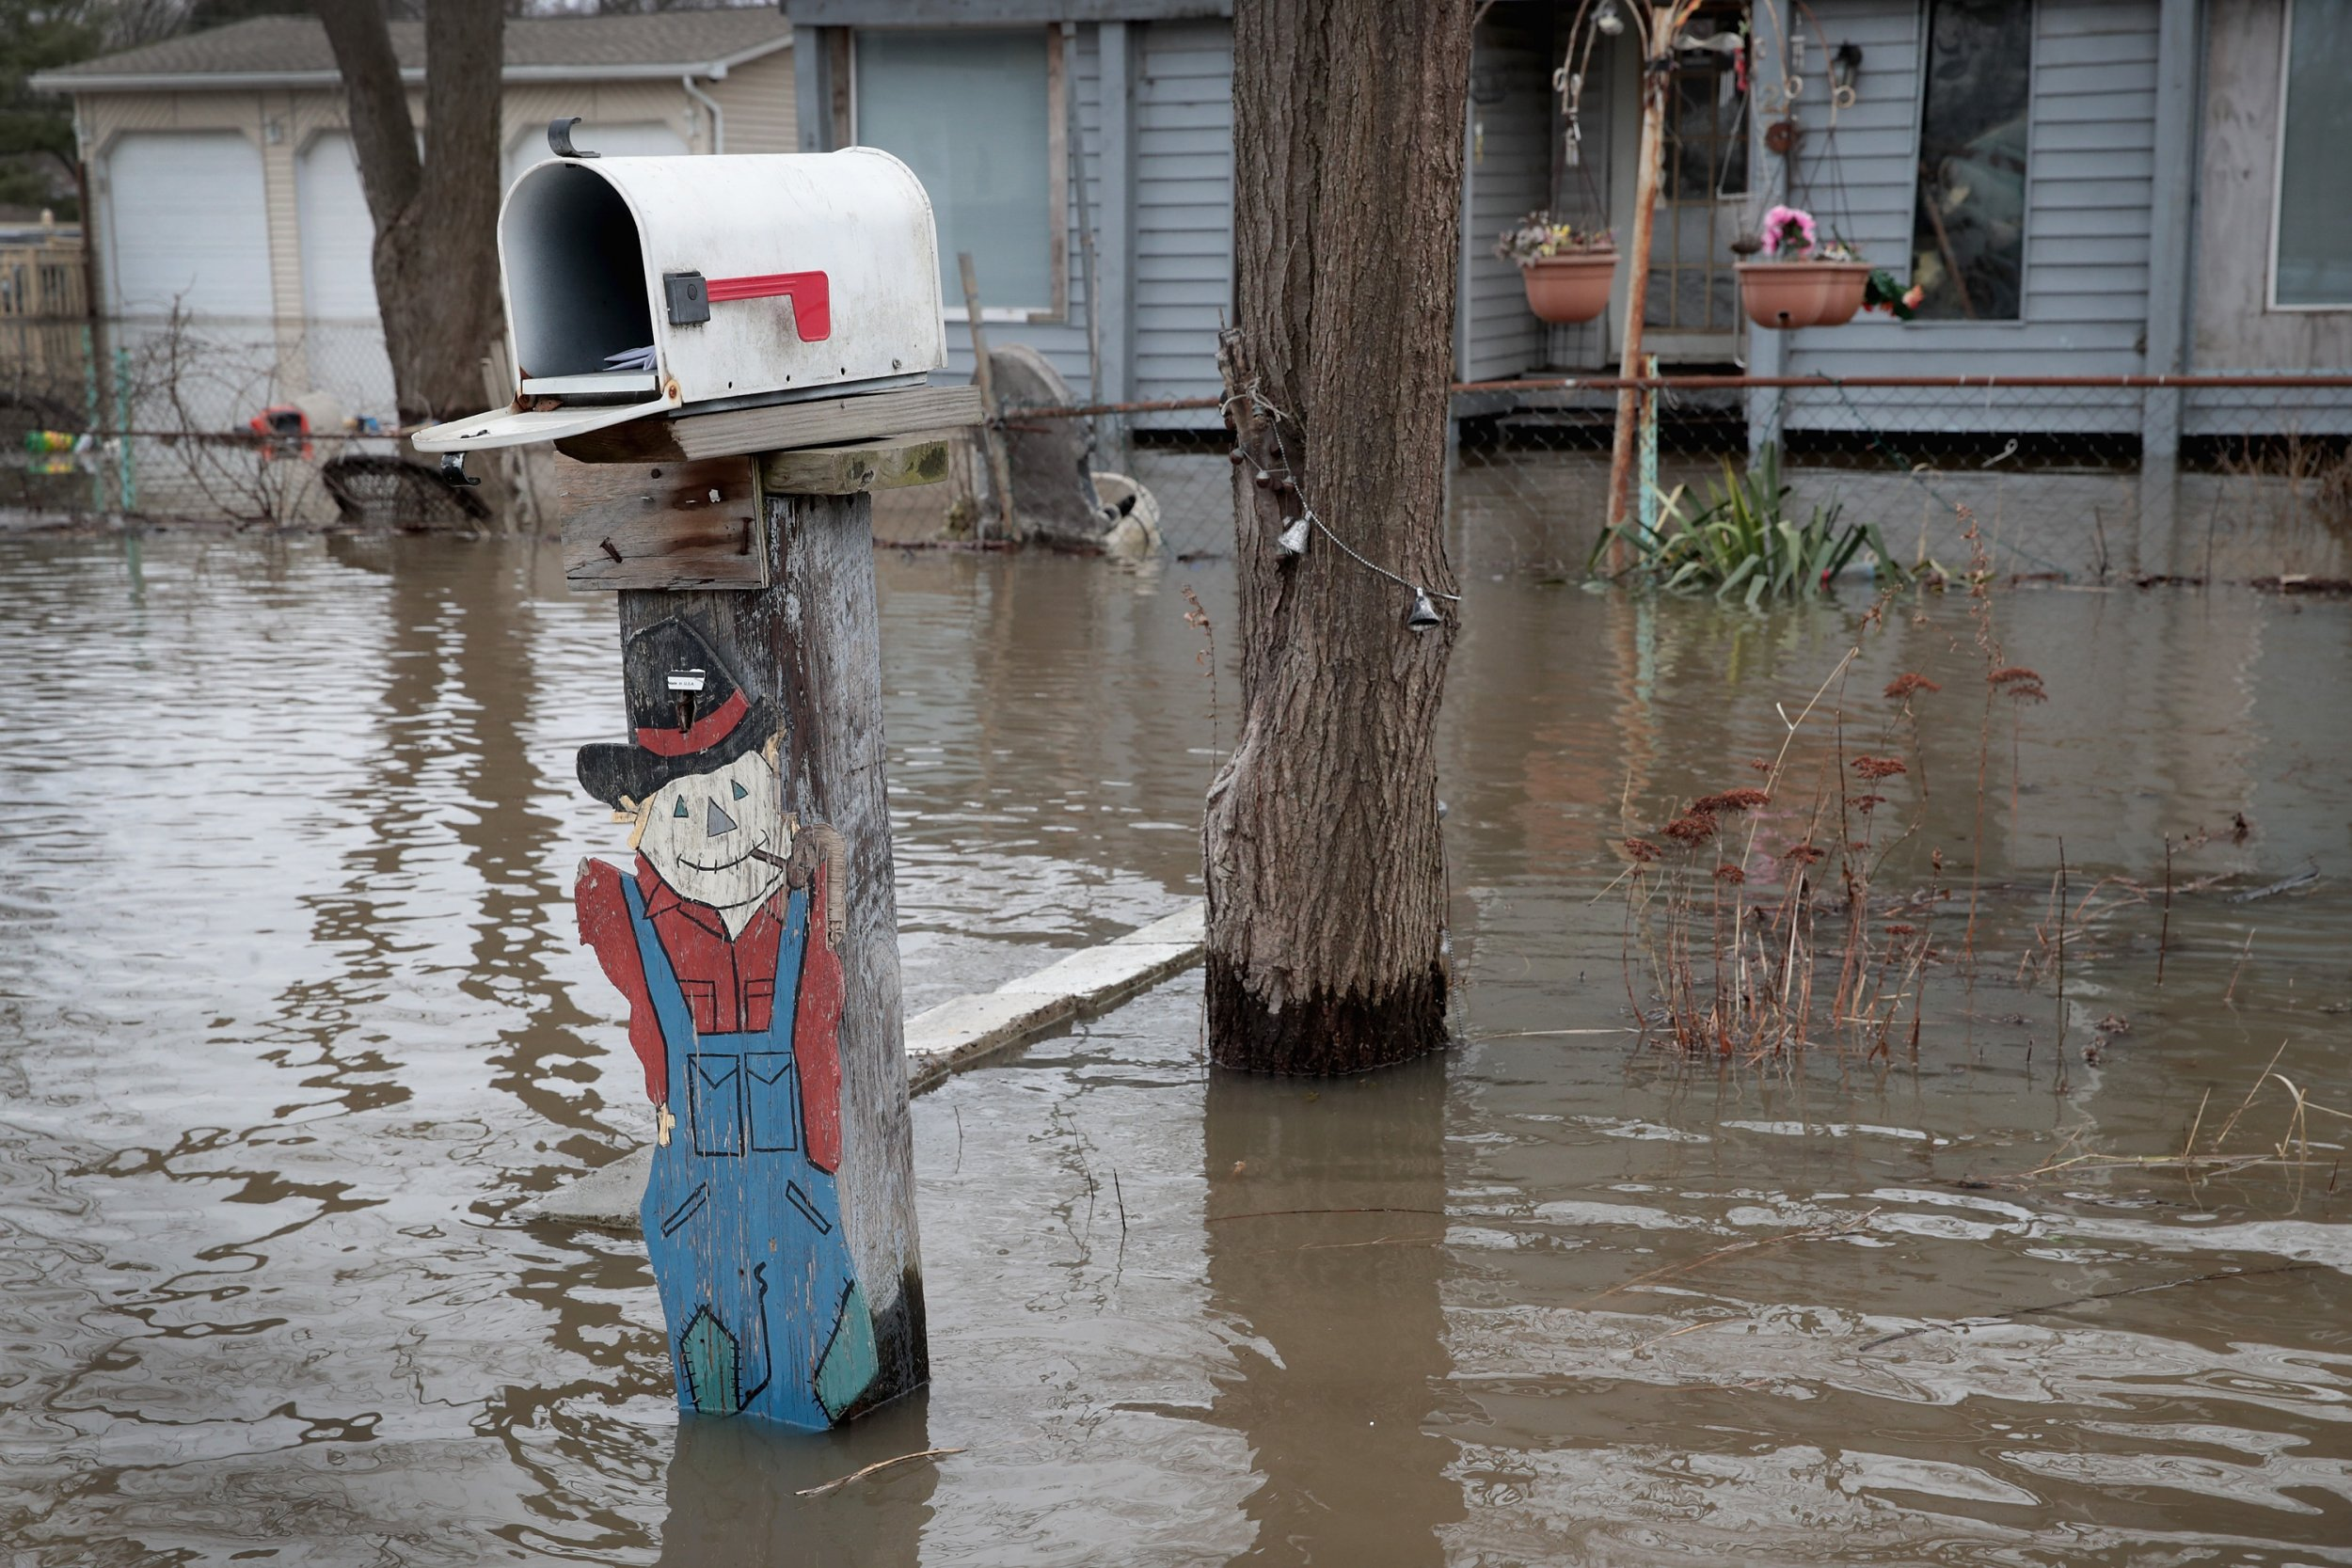 Kentucky Business Search >> Midwest Storms: 5 Killed in Flooding, Tornadoes as States Brace for More Severe Weather